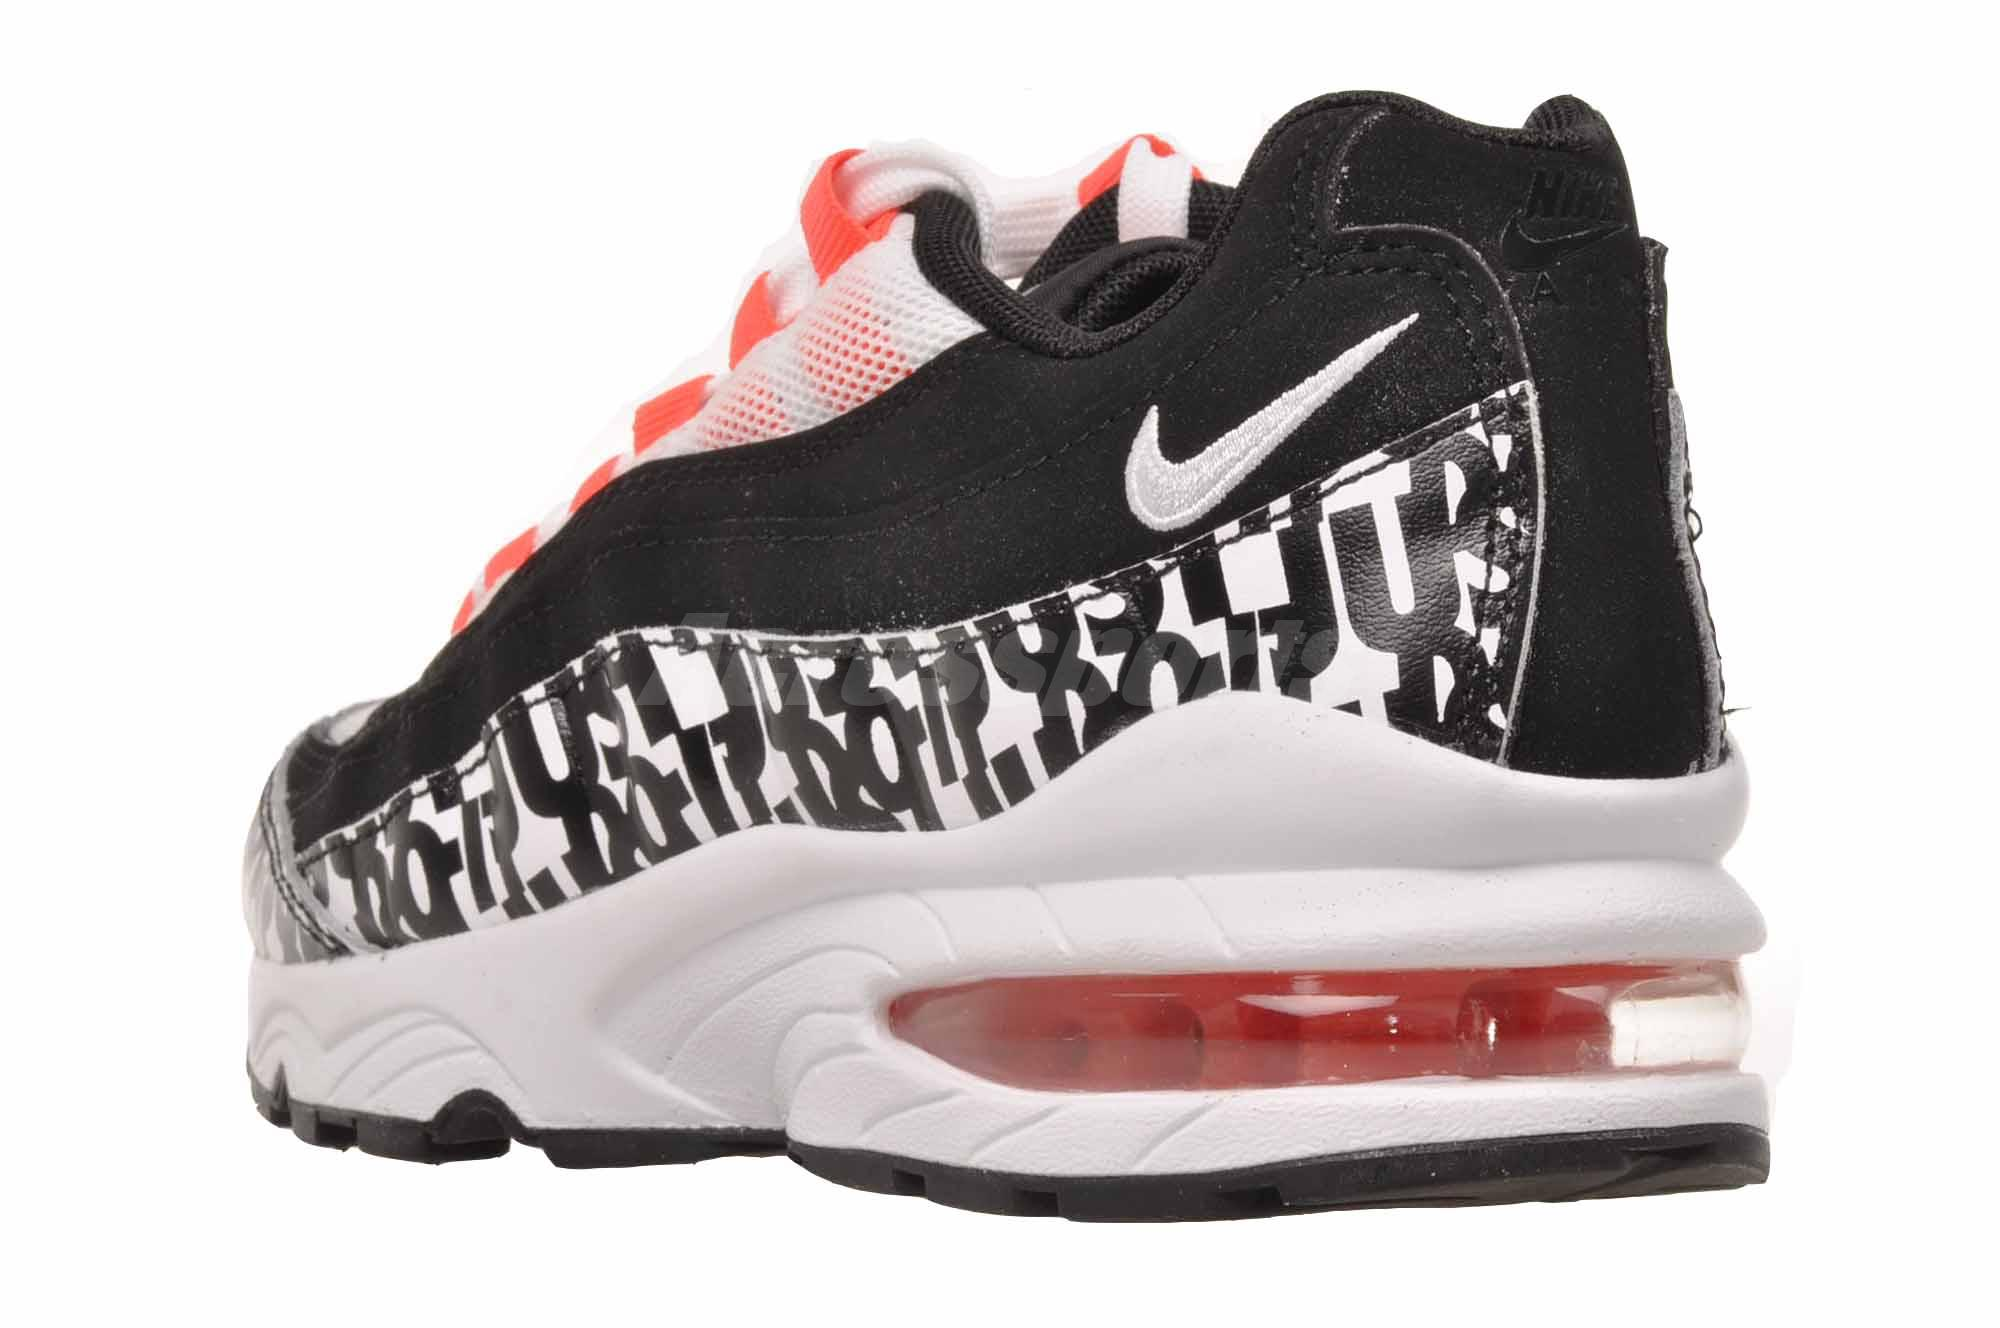 6789d996476 Nike Air Max 95 Print GS Kids Youth Running Shoes Black White AQ9711 ...